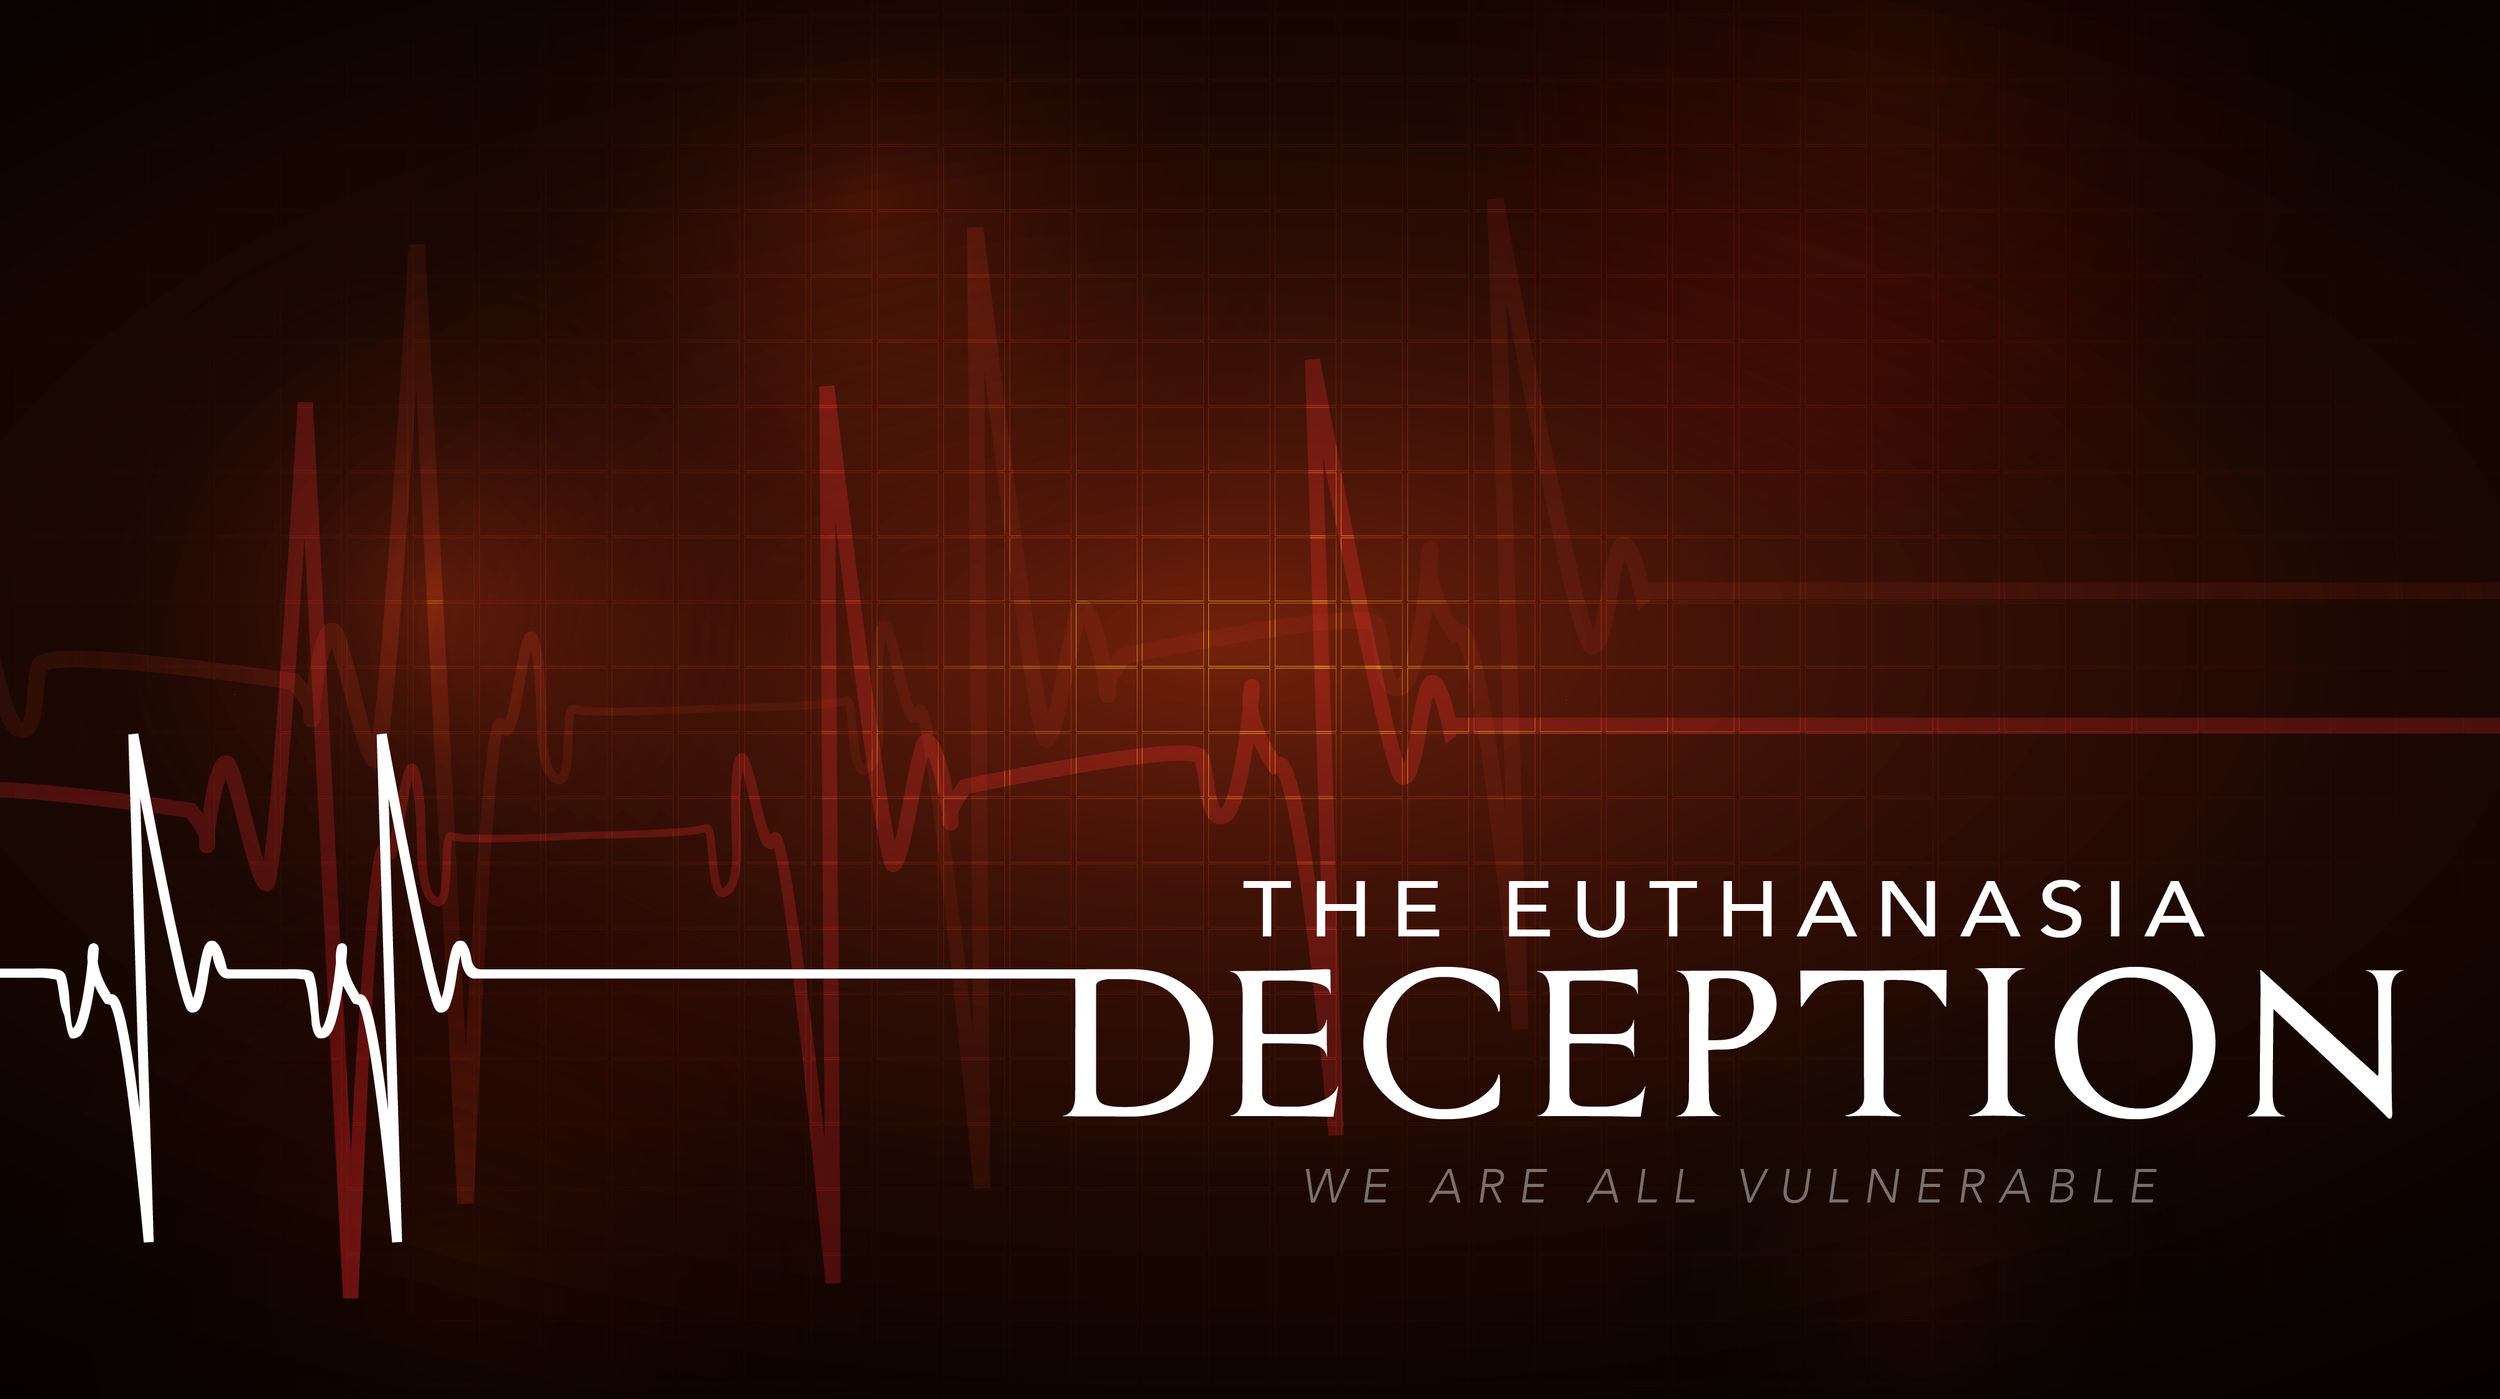 The Euthanasia Deception - Belgium's 15 year experiment with euthanasia has gone terribly wrong. This film is a dire warning for the rest of the world. The Euthanasia Deception is a one-hour documentary featuring powerful testimonies from Belgium and beyond - of those devastated by the false ideology of 'mercy killing'.